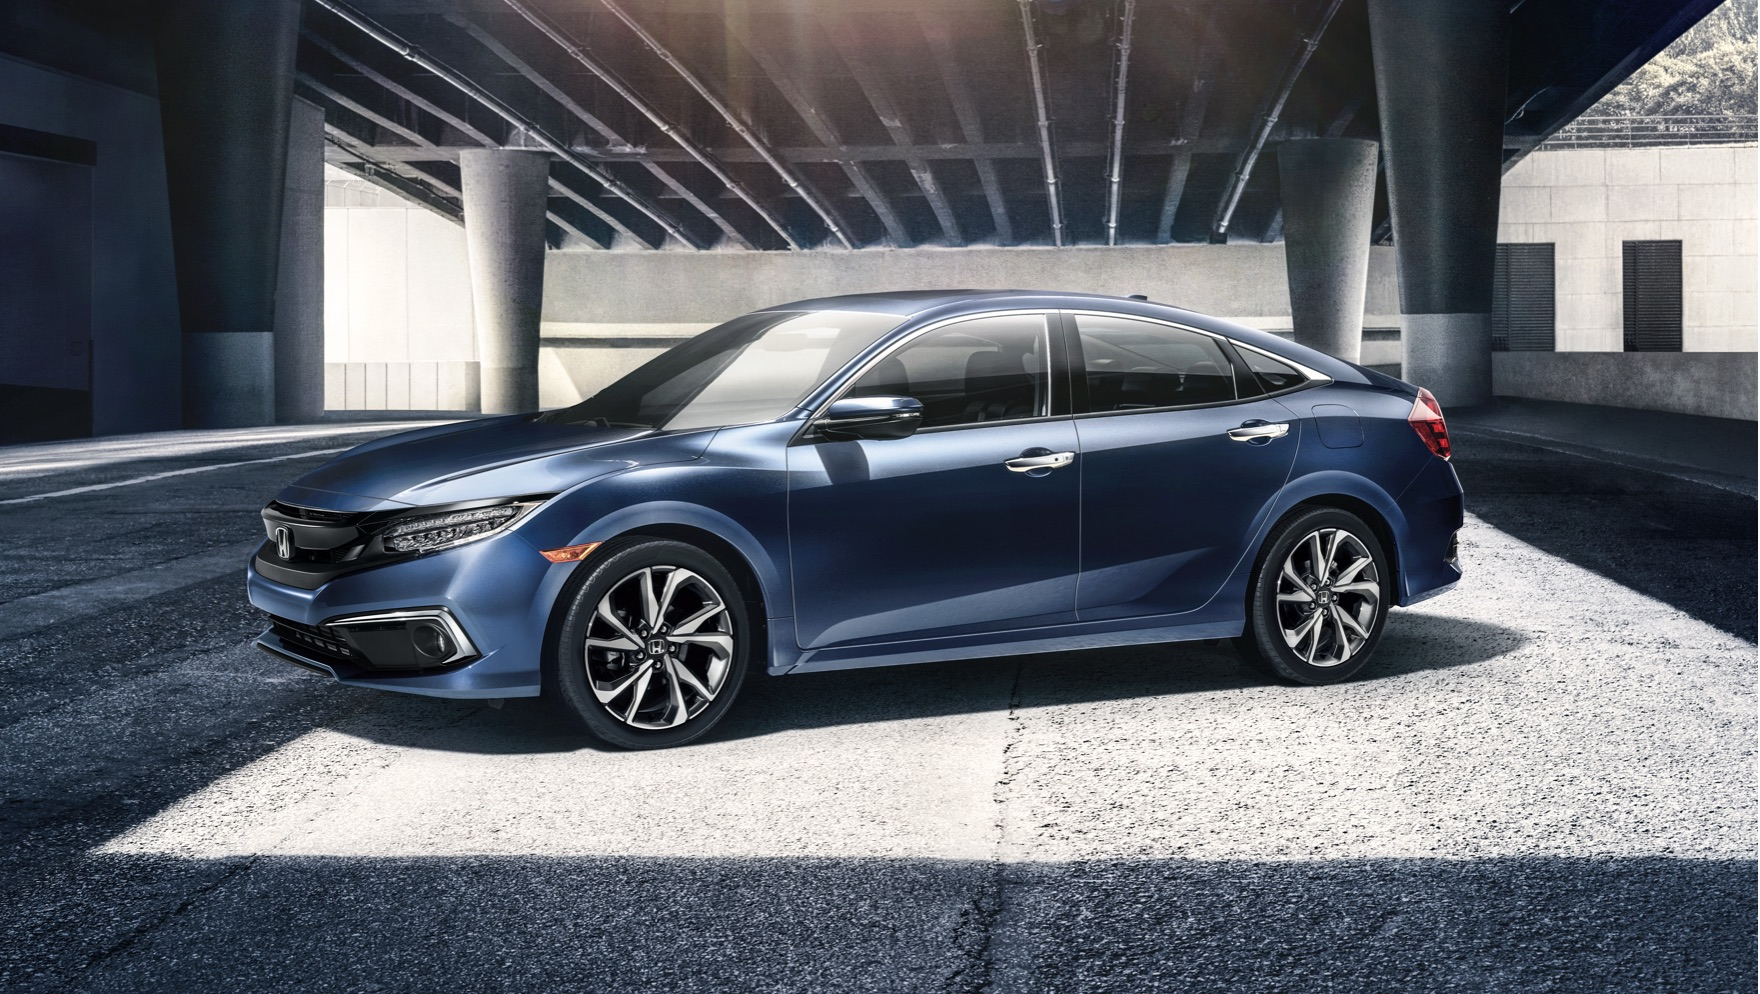 Front driver-side view of the 2020 Honda Civic Touring Sedan in Cosmic Blue Metallic parked in front of modern building.